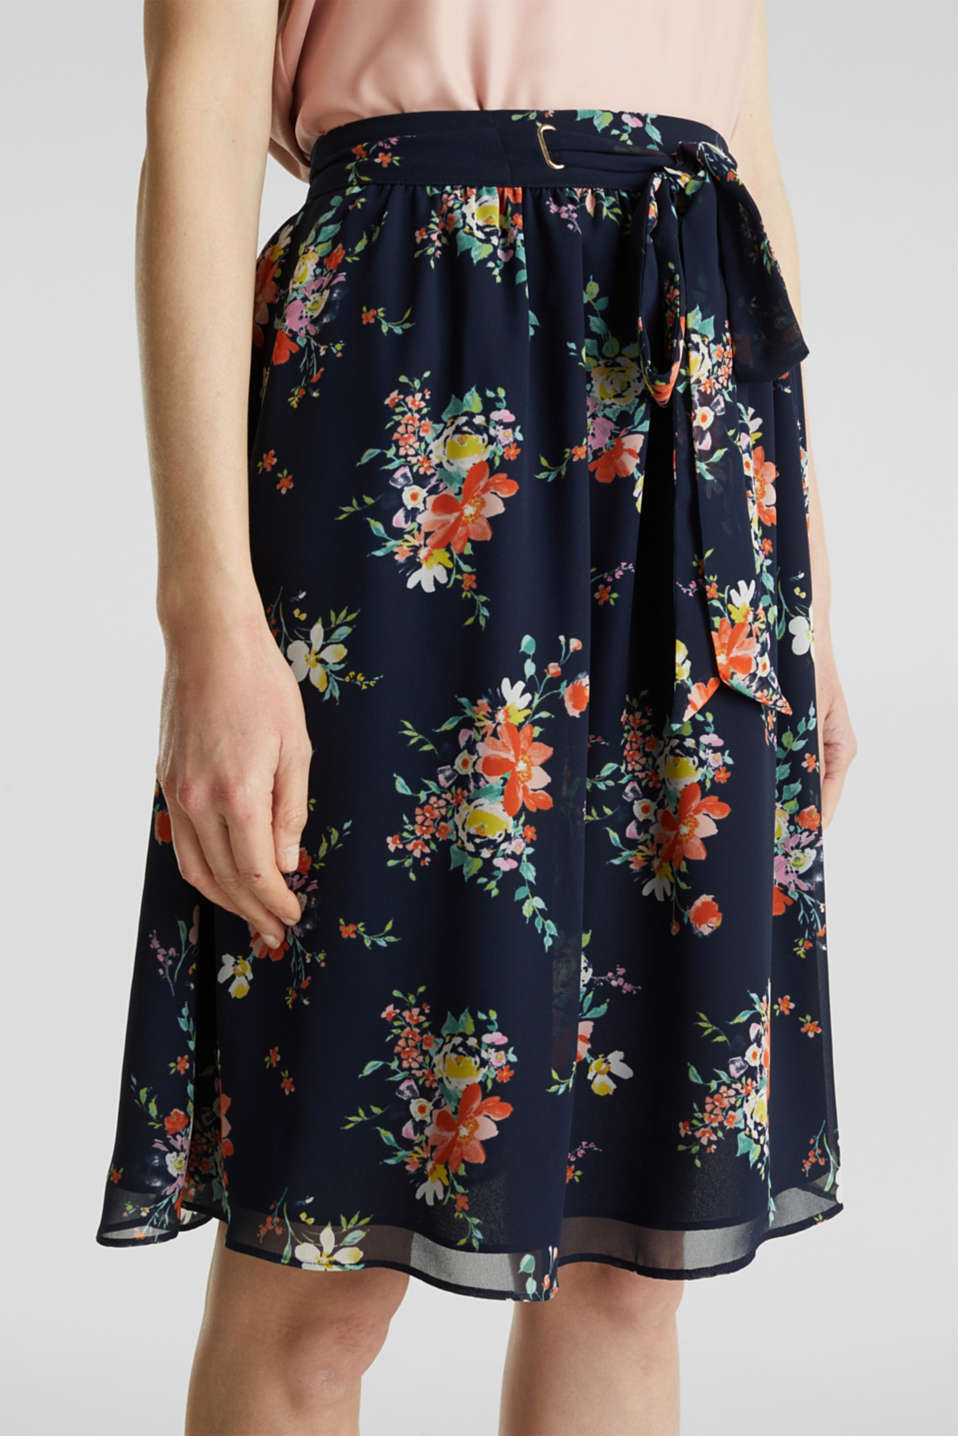 Skirt in floral crêpe chiffon, NAVY 4, detail image number 6